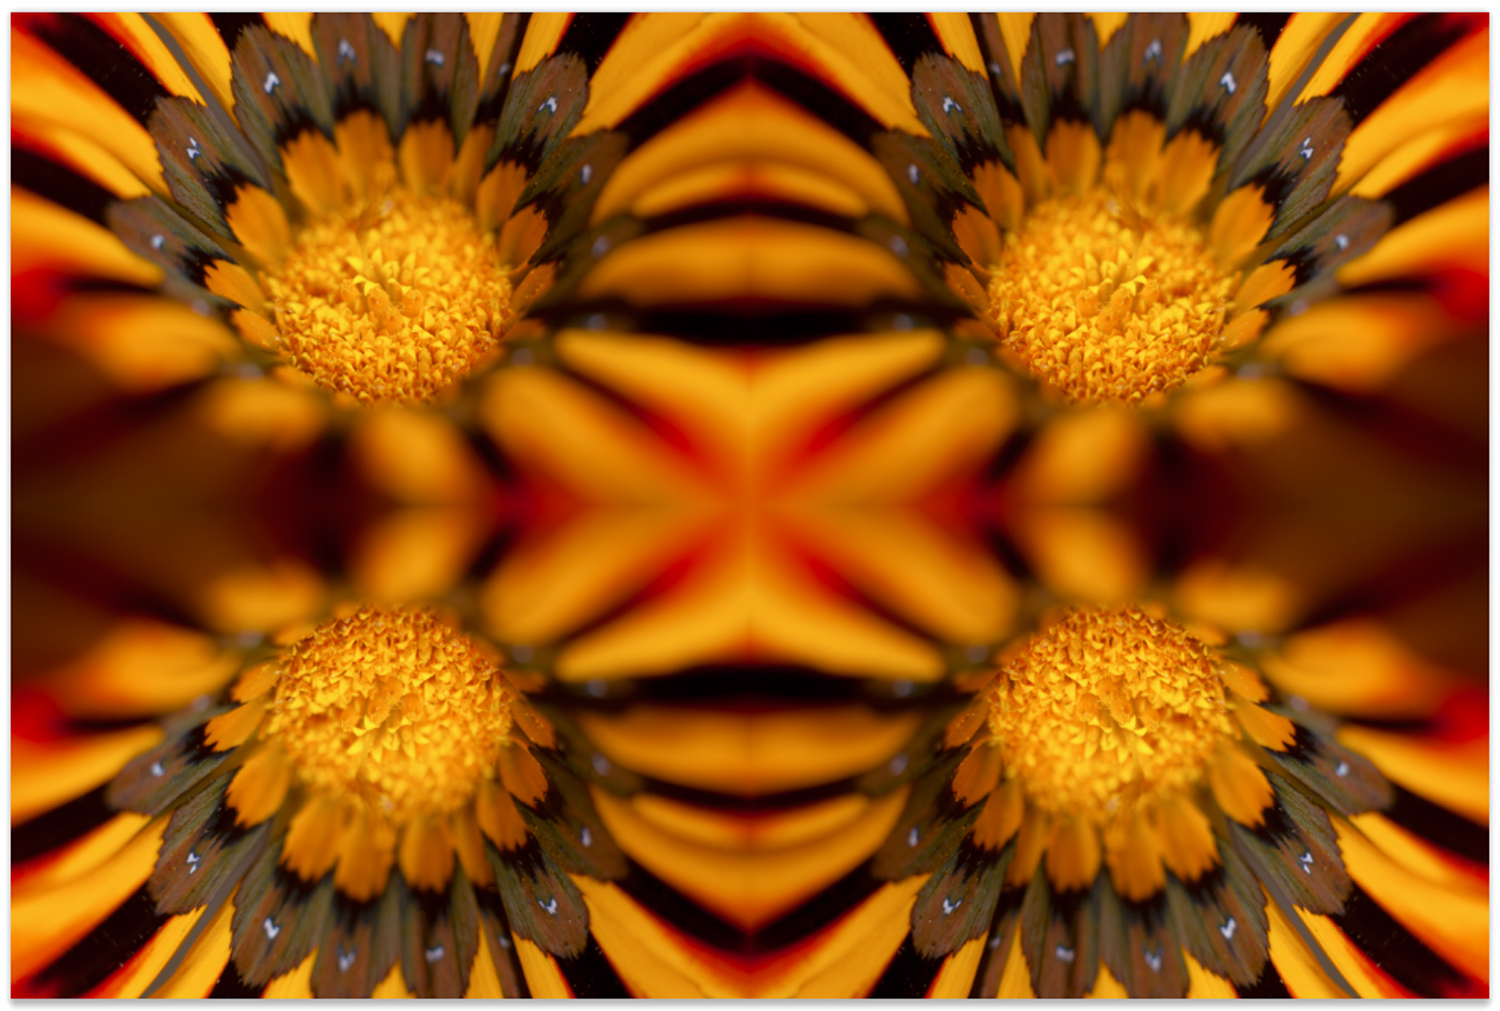 create mandalas in photoshop with stack modes – duplicating the image again